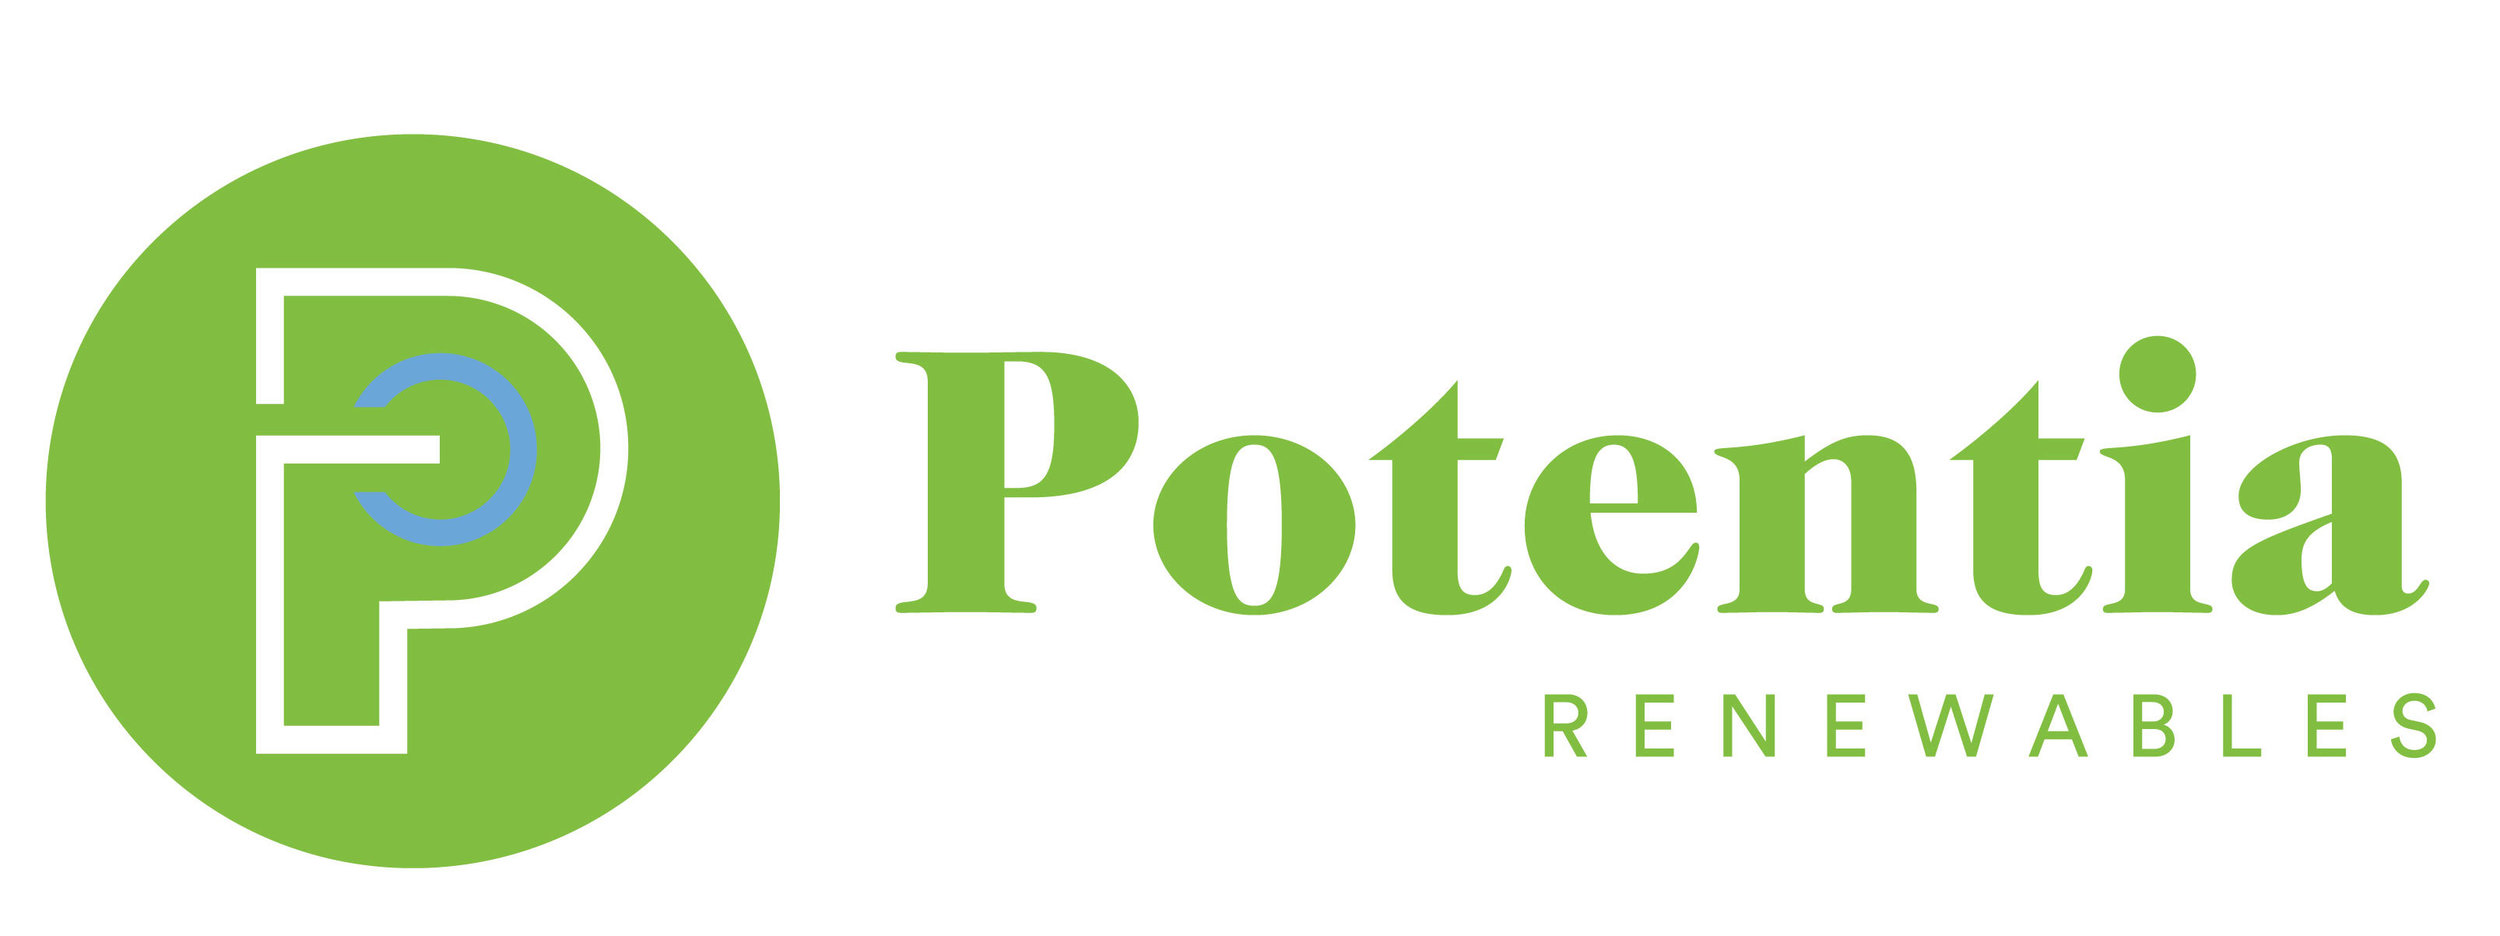 Potentia Renewables Logo Horizontal.jpg